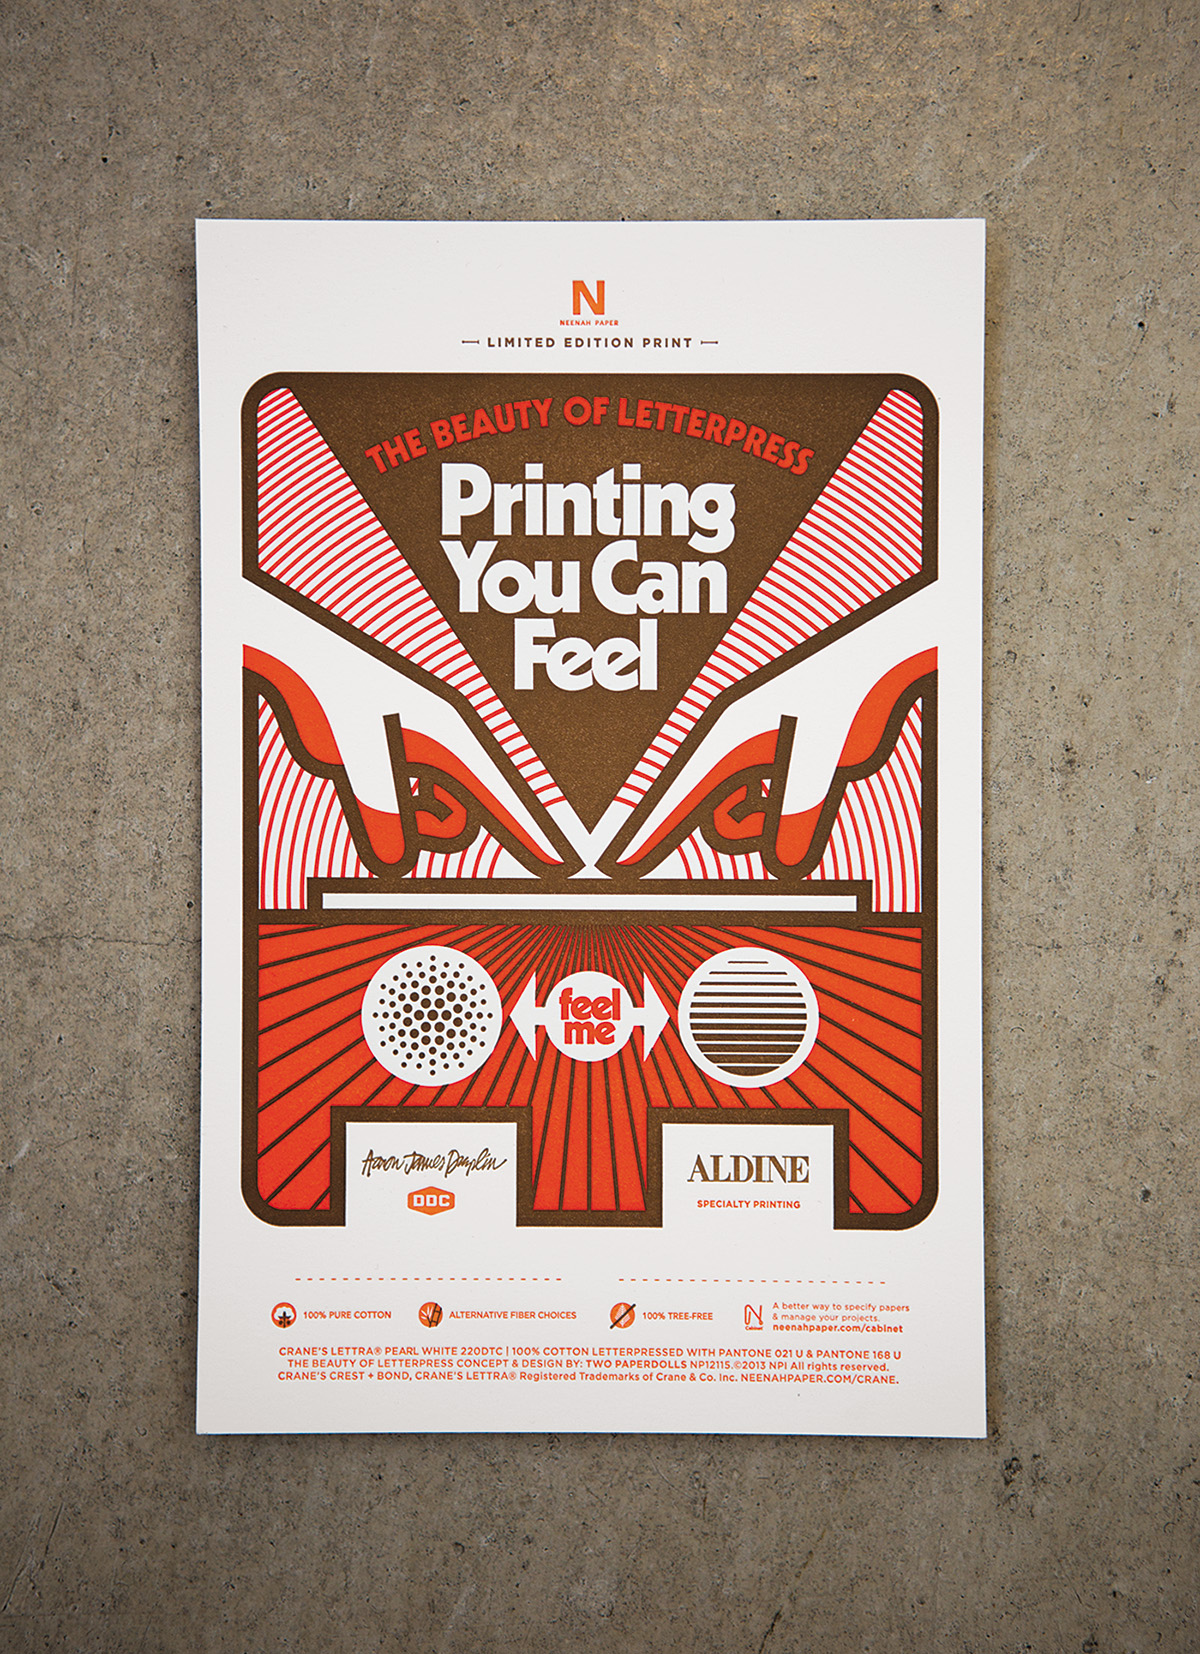 Printing you can feel, for Neenah paper, 2014